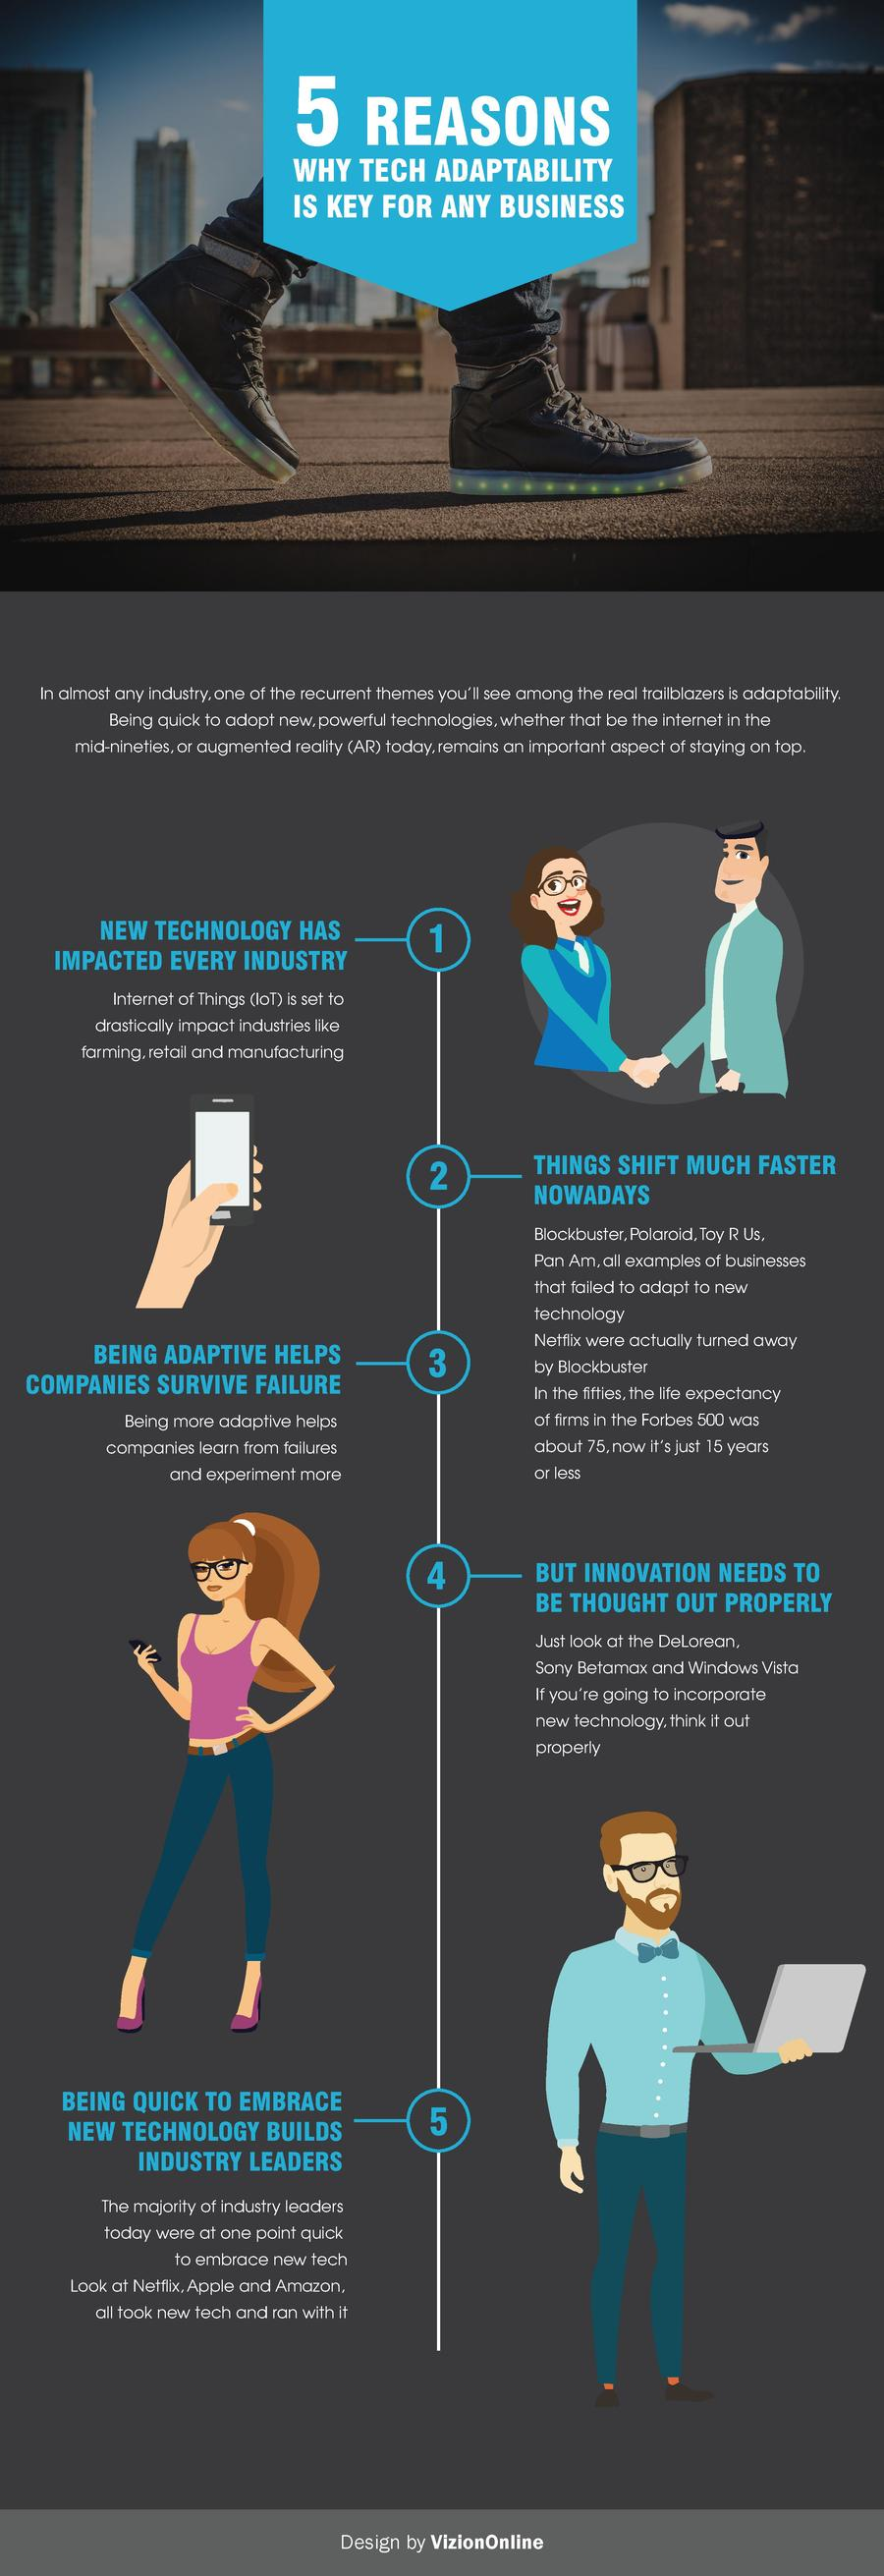 5 Reasons Why Tech Adaptability is Key for Any Business